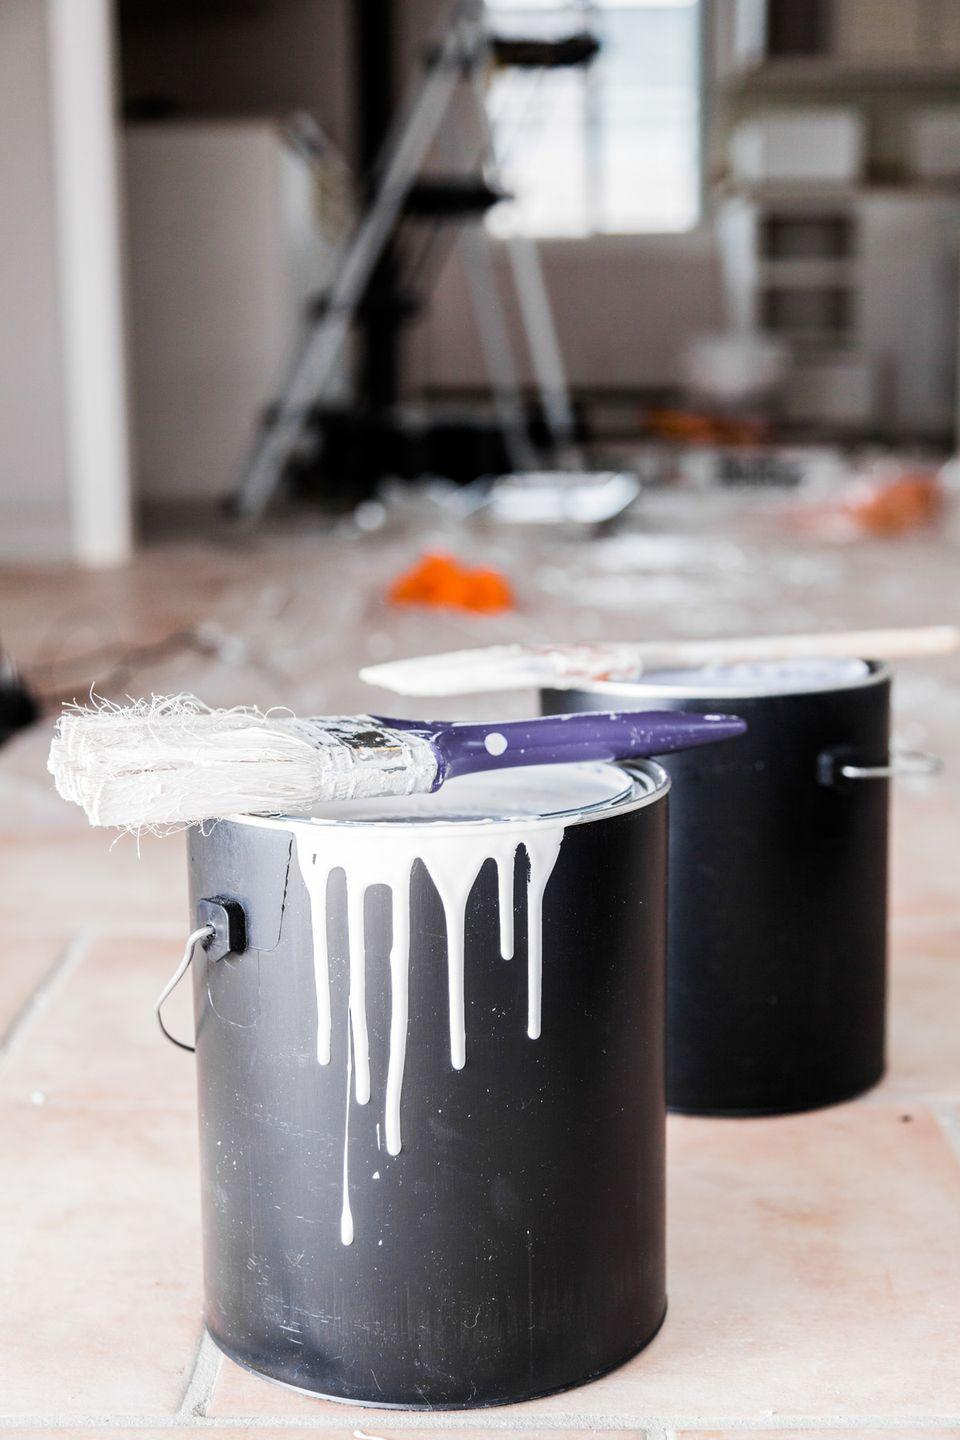 "<p>You've dutifully kept it in your garage after painting the living room. But even if it hasn't dried out completely, it's likely to no longer match the room — wall paint can lighten or darken over time depending on the formula or environment. <a href=""https://www.goodhousekeeping.com/home/cleaning/tips/a24186/throwing-out-paint/"" rel=""nofollow noopener"" target=""_blank"" data-ylk=""slk:Here's how to properly kid rid of it."" class=""link rapid-noclick-resp"">Here's how to properly kid rid of it.</a></p>"